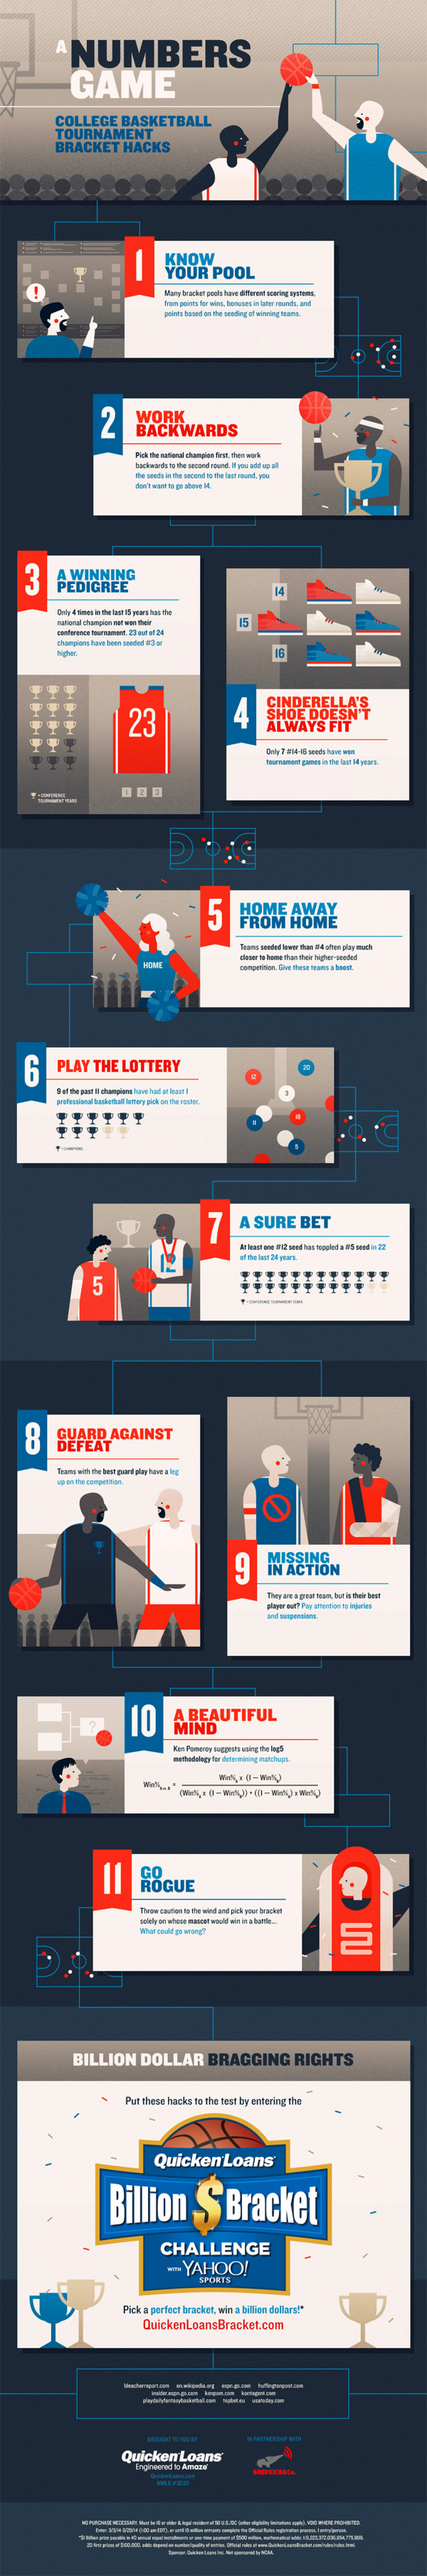 A Numbers Game: College Basketball Tournament Bracket Hacks Infographic